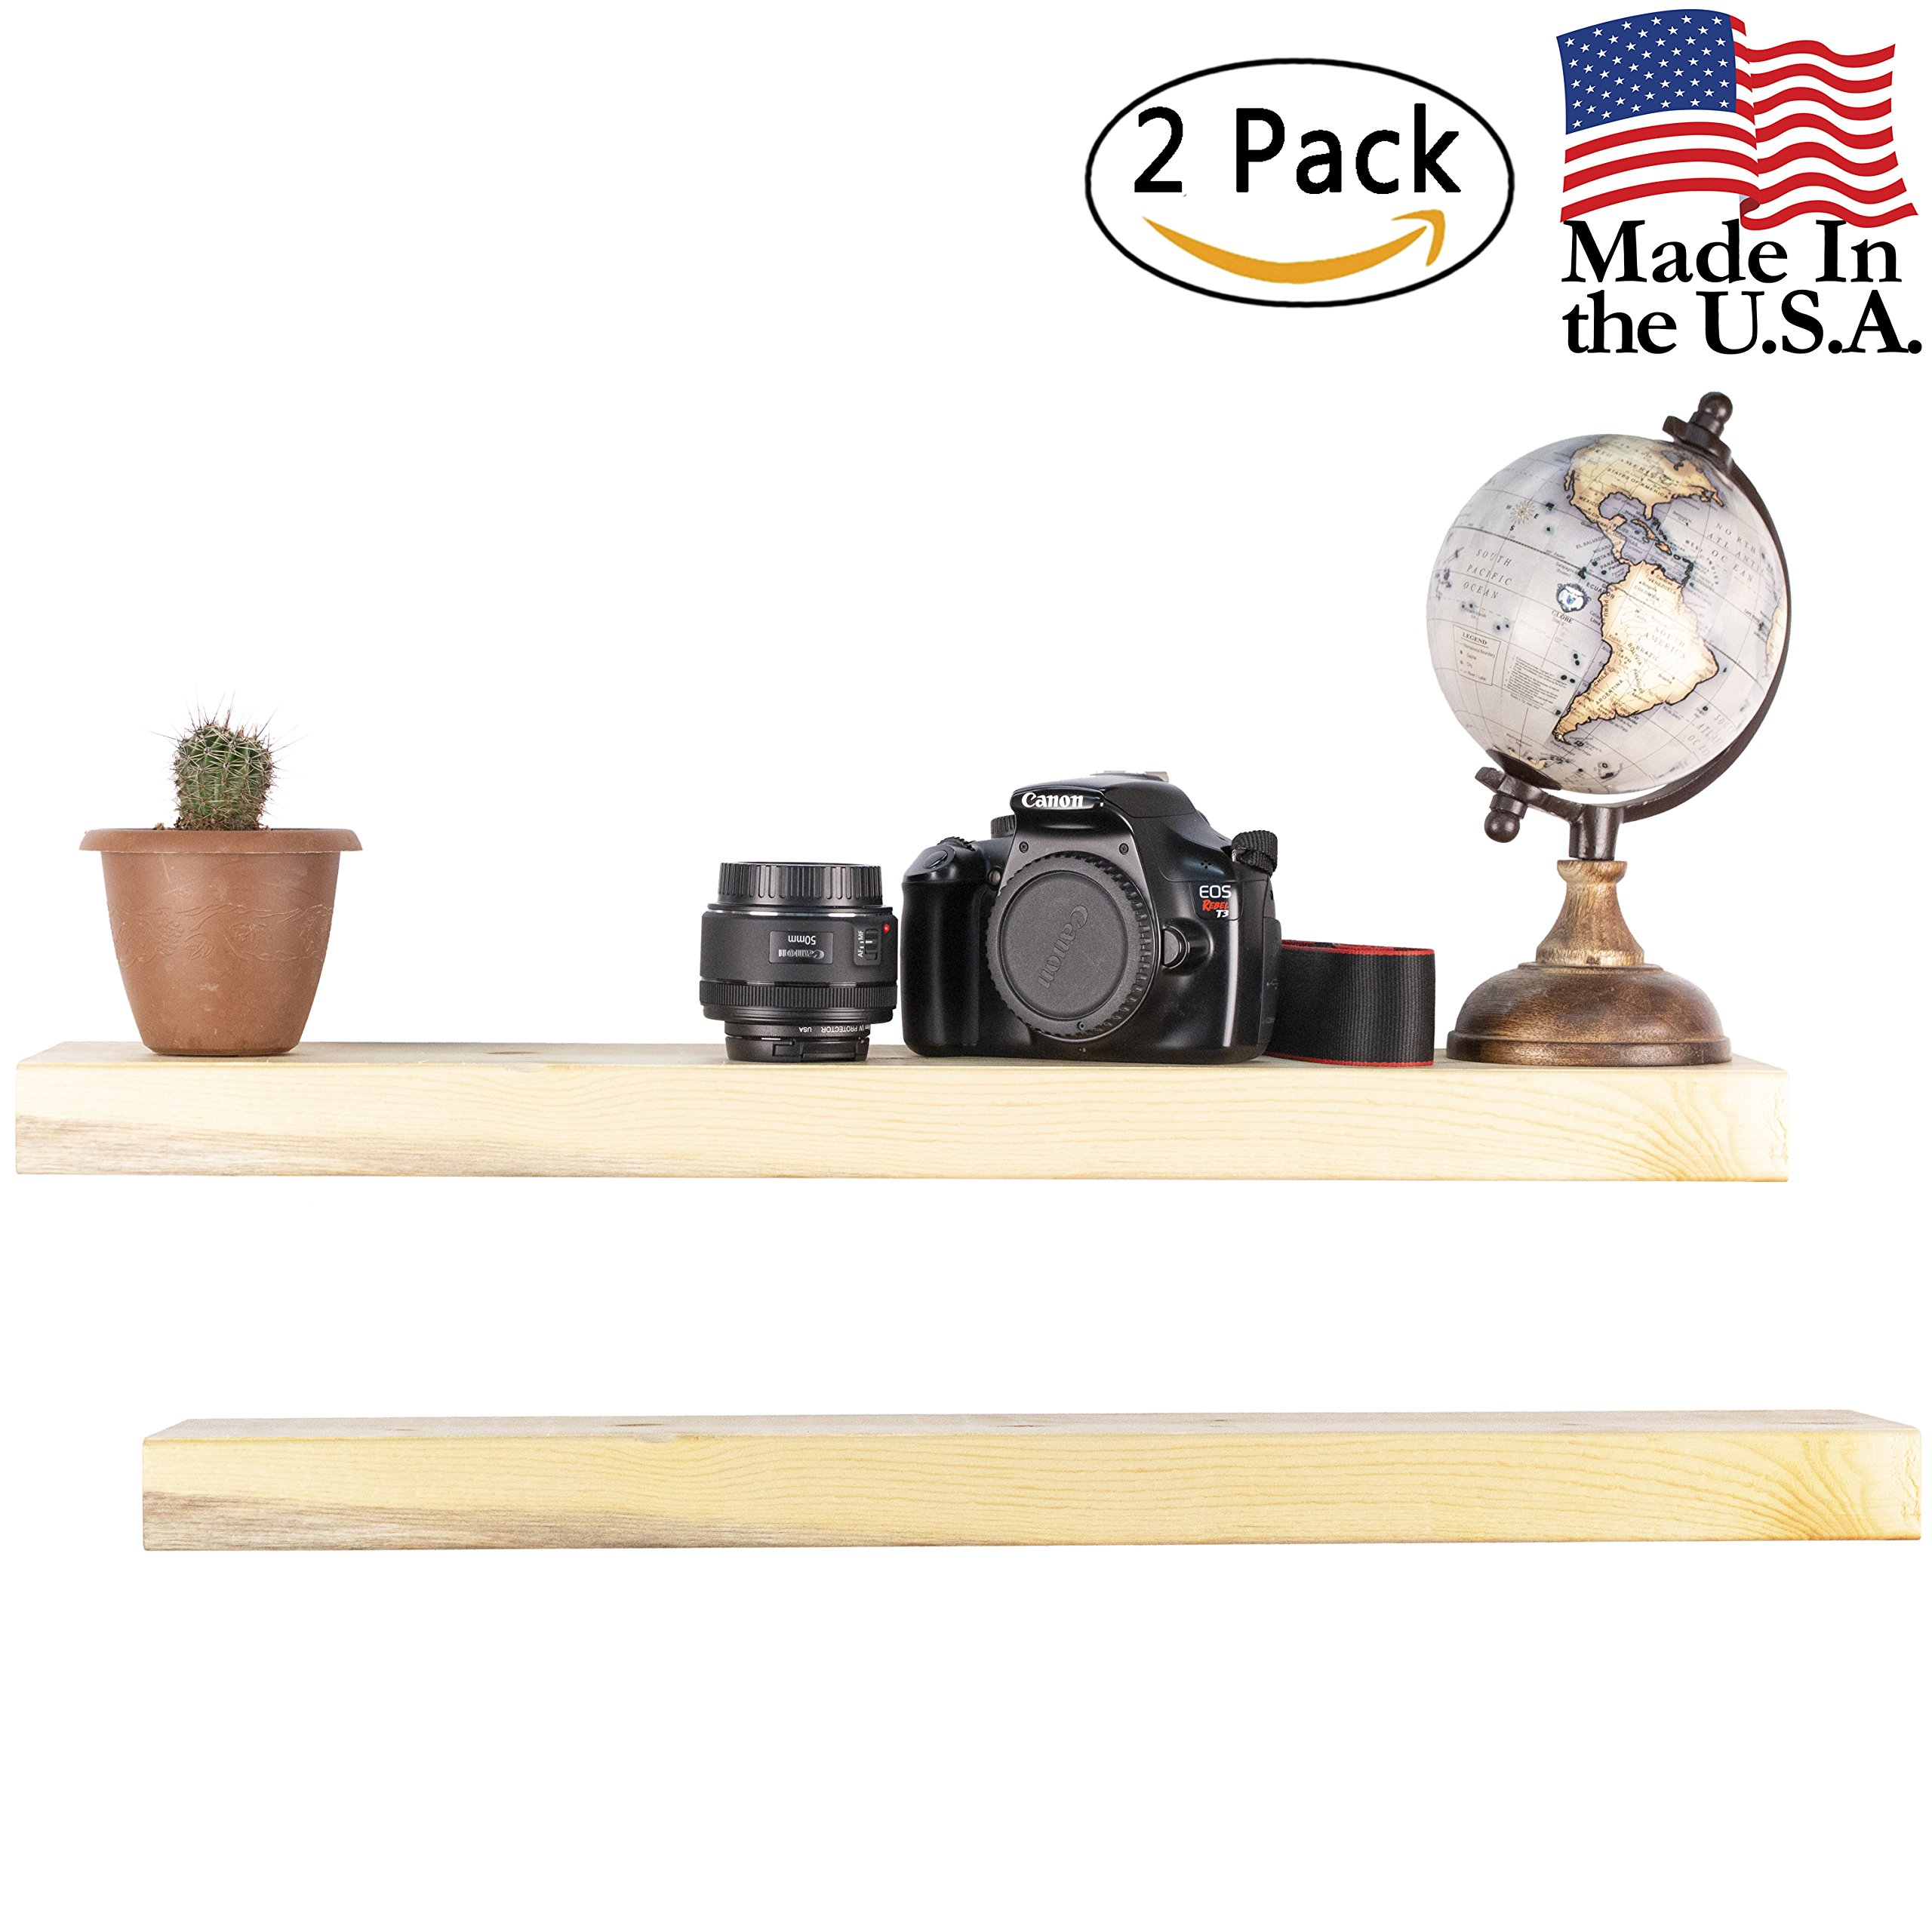 Floating Shelves Wall Mounted Shelf - Rustic Wood Decor Hanging for Bathroom Kitchen Bedrooms Living Room or Office Walls - Sturdy & Decorative Shelving Storage Rack - USA Made - 2 FT. Natural 2-Pack